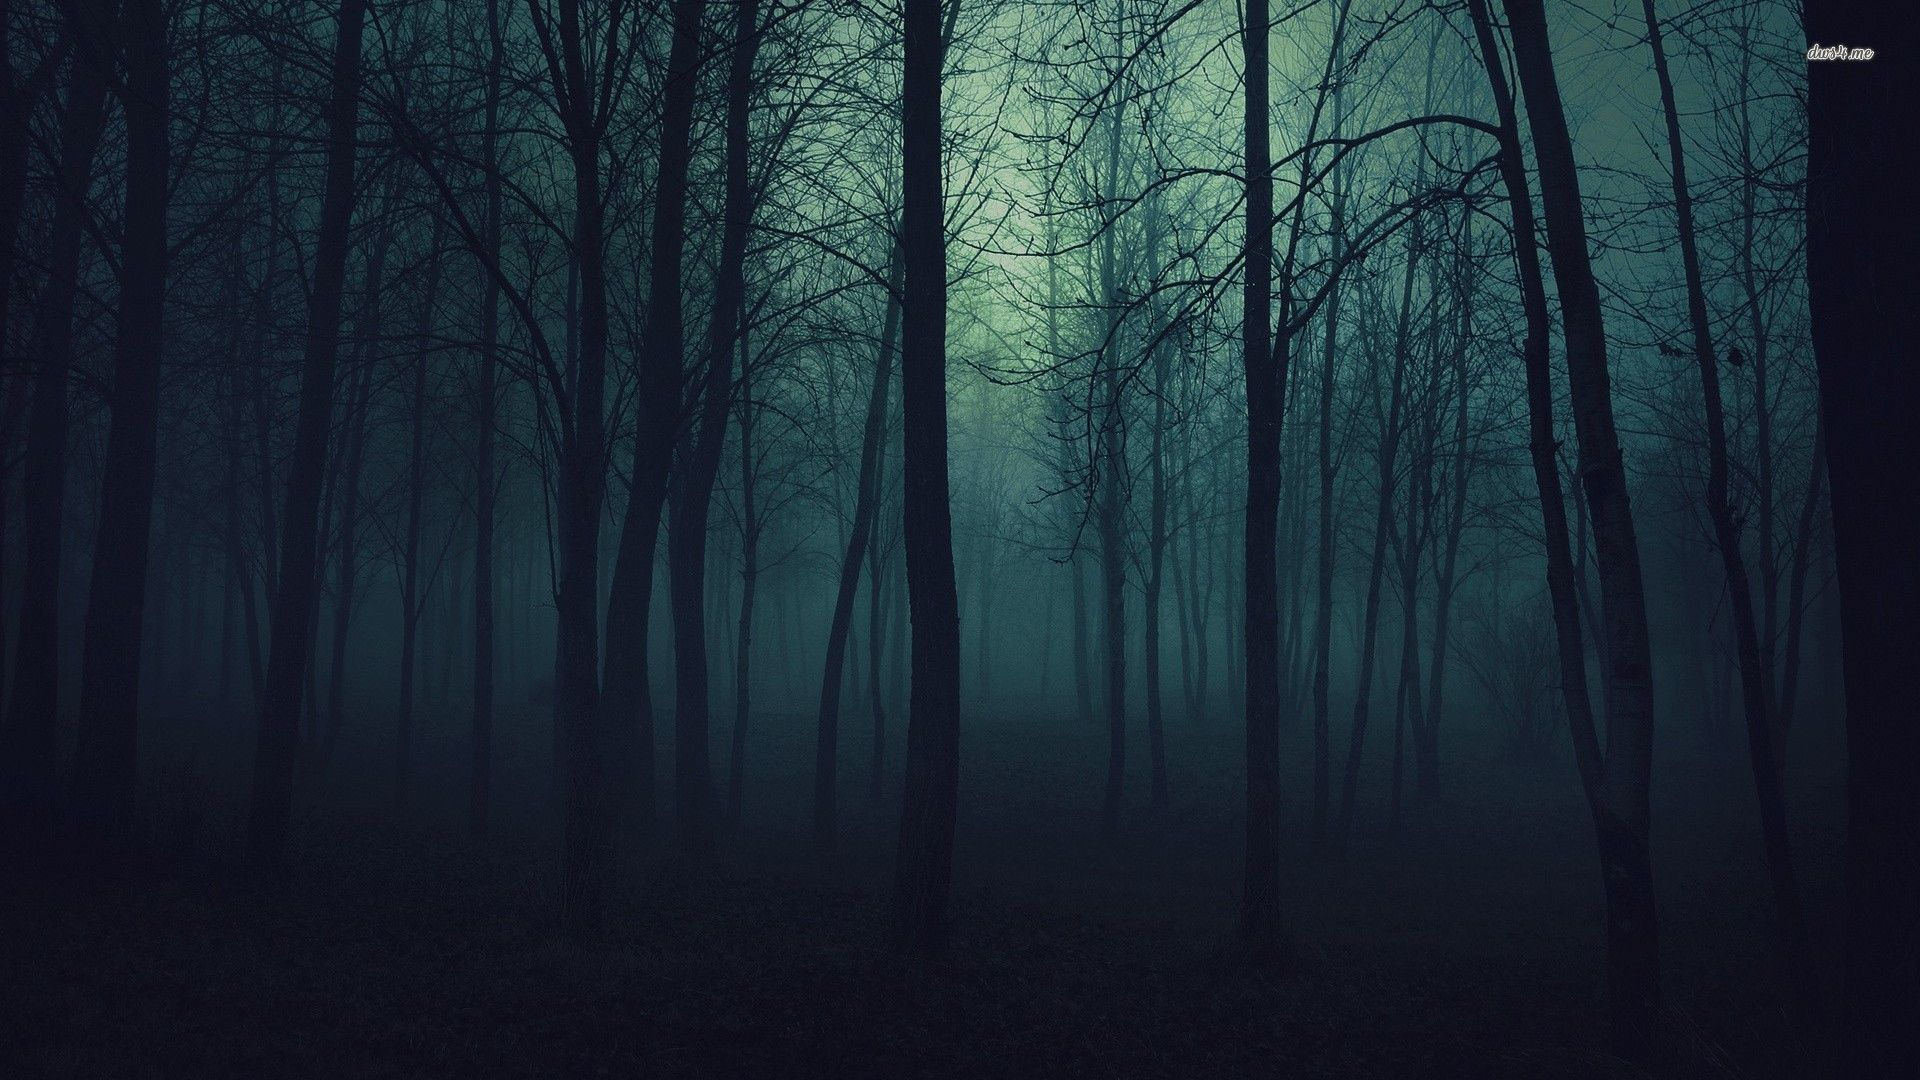 dark forest tumblr - Поиск в Google | Tattoos | Pinterest | Dark ...